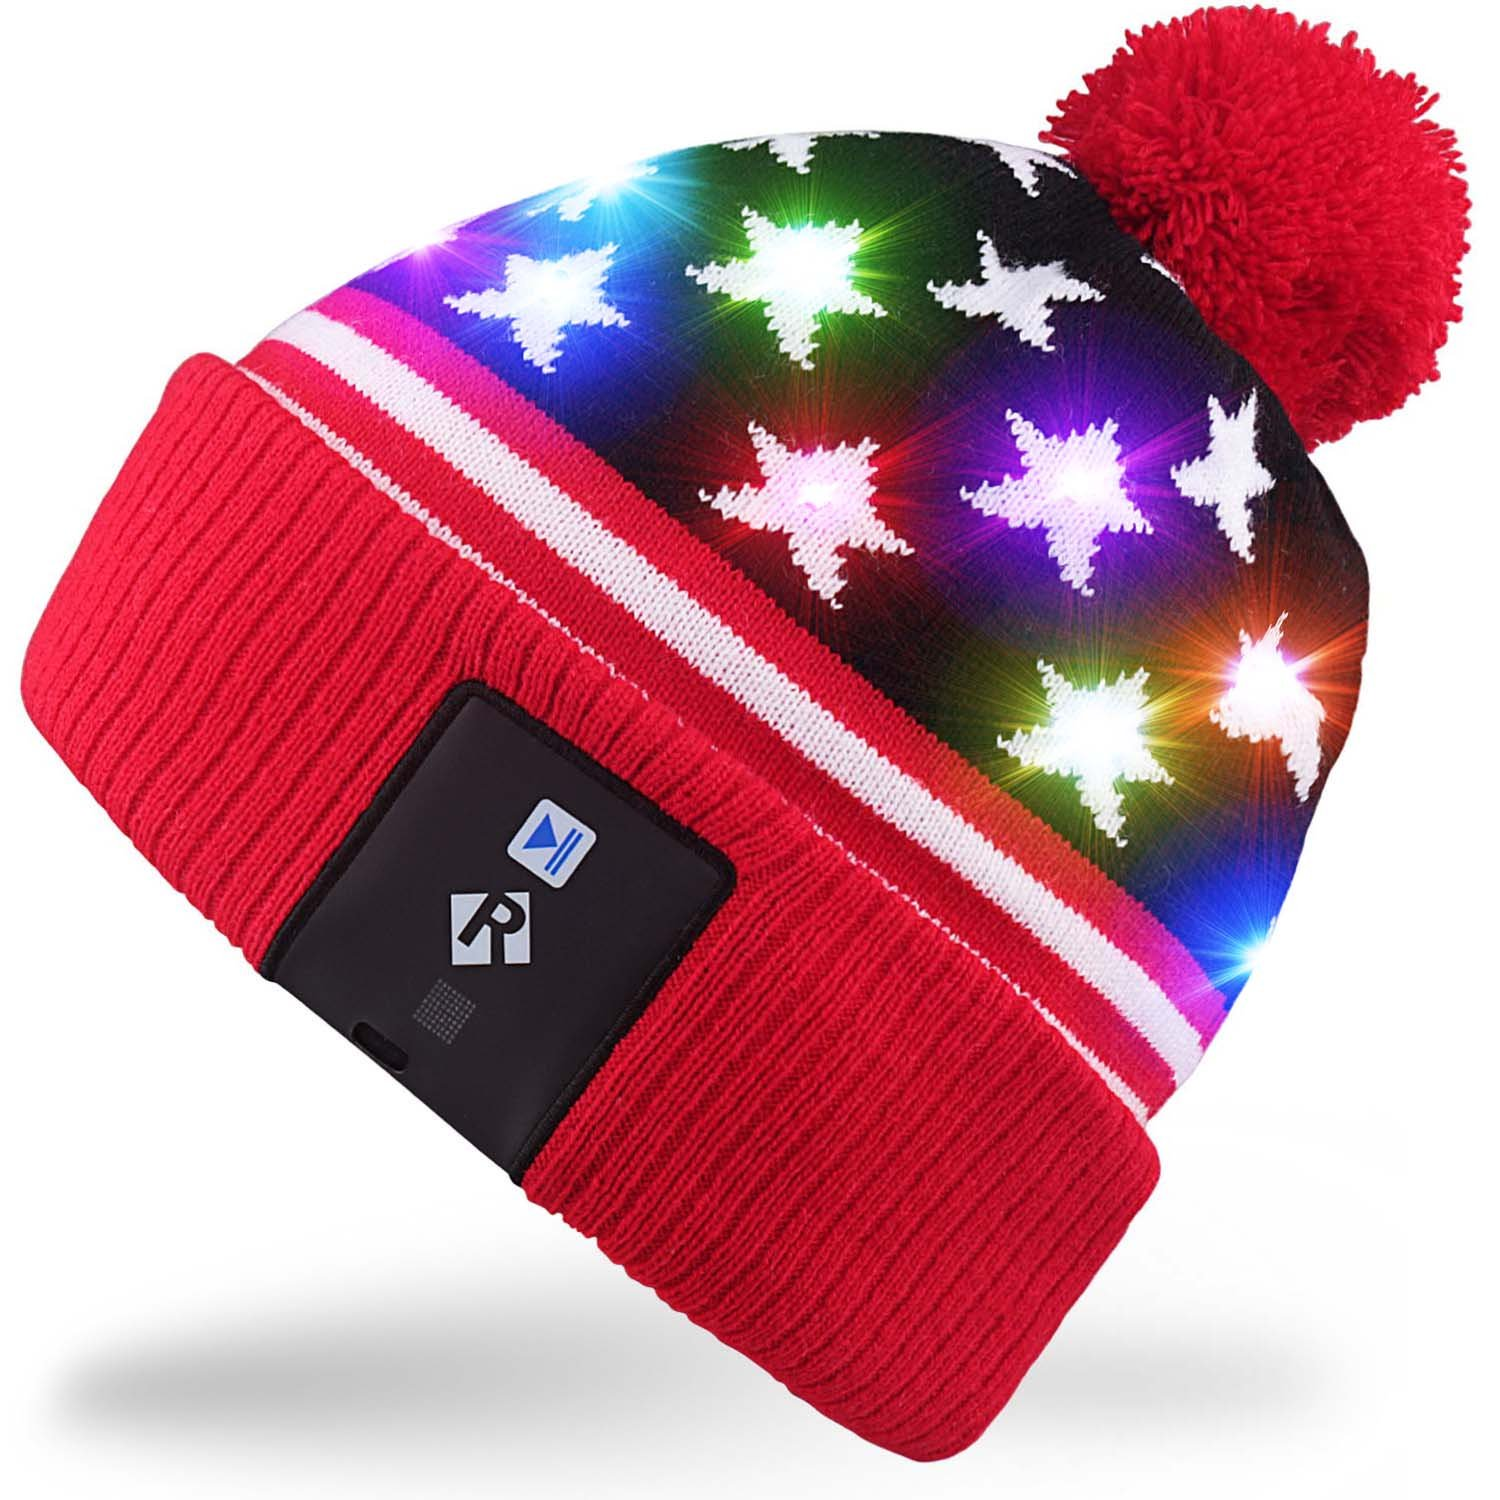 Rotibox Stilvolle LED-Lampe Leuchten Beanie Hut Stricken Kappe